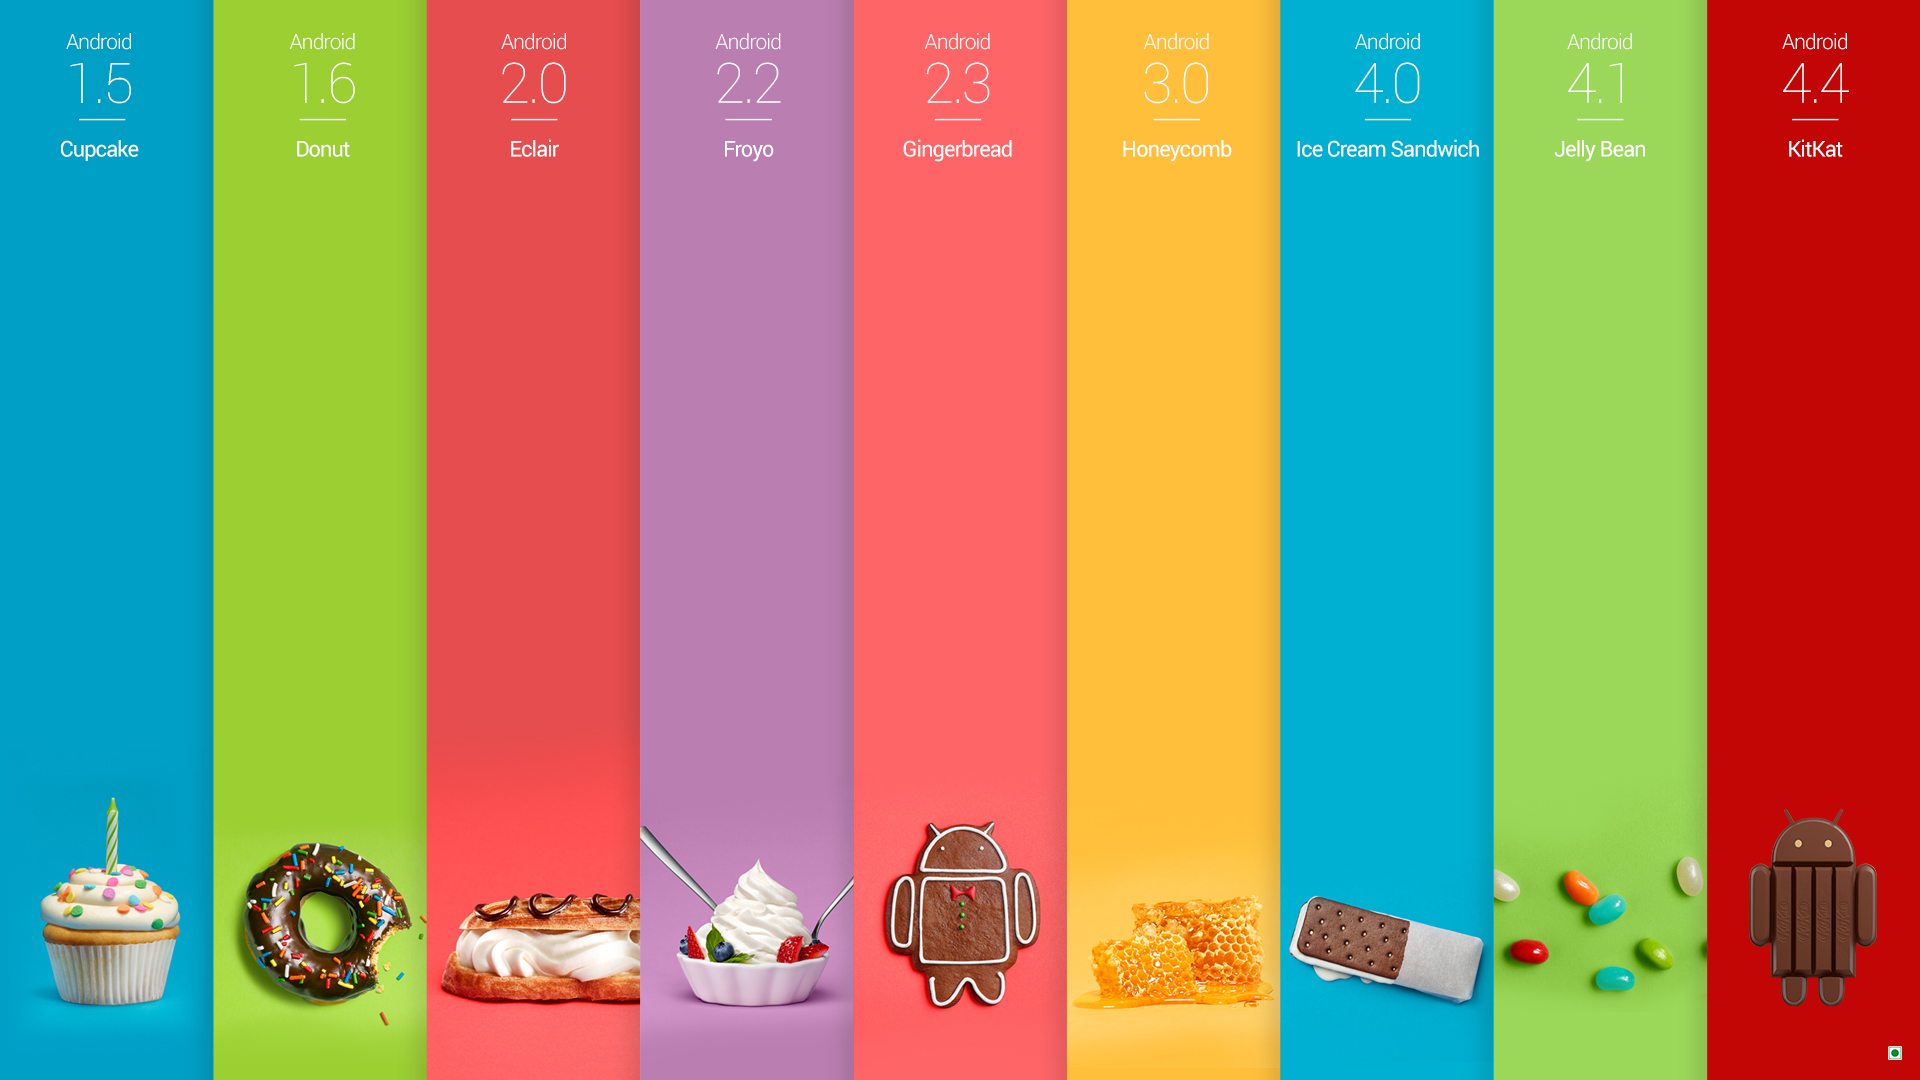 Android-flavours-err-versions-p-wallpaper-wp3602473